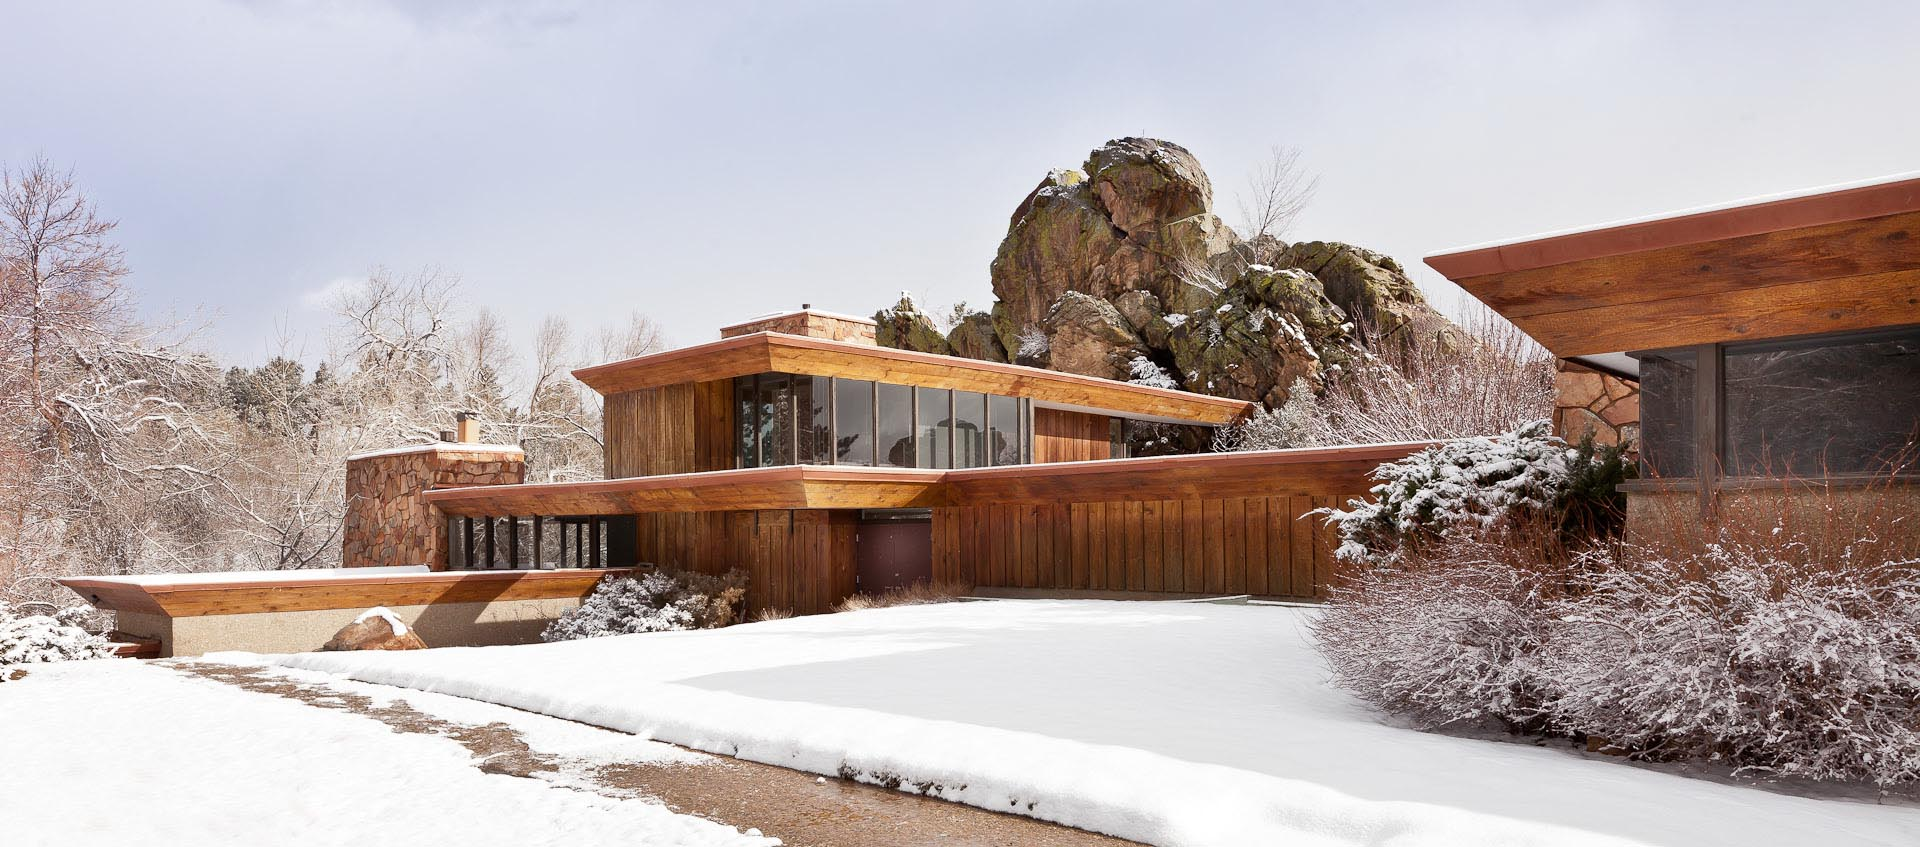 Exterior architectural photo of Charles Haertling's mid-century modern custom Menkick House in Boulder, CO